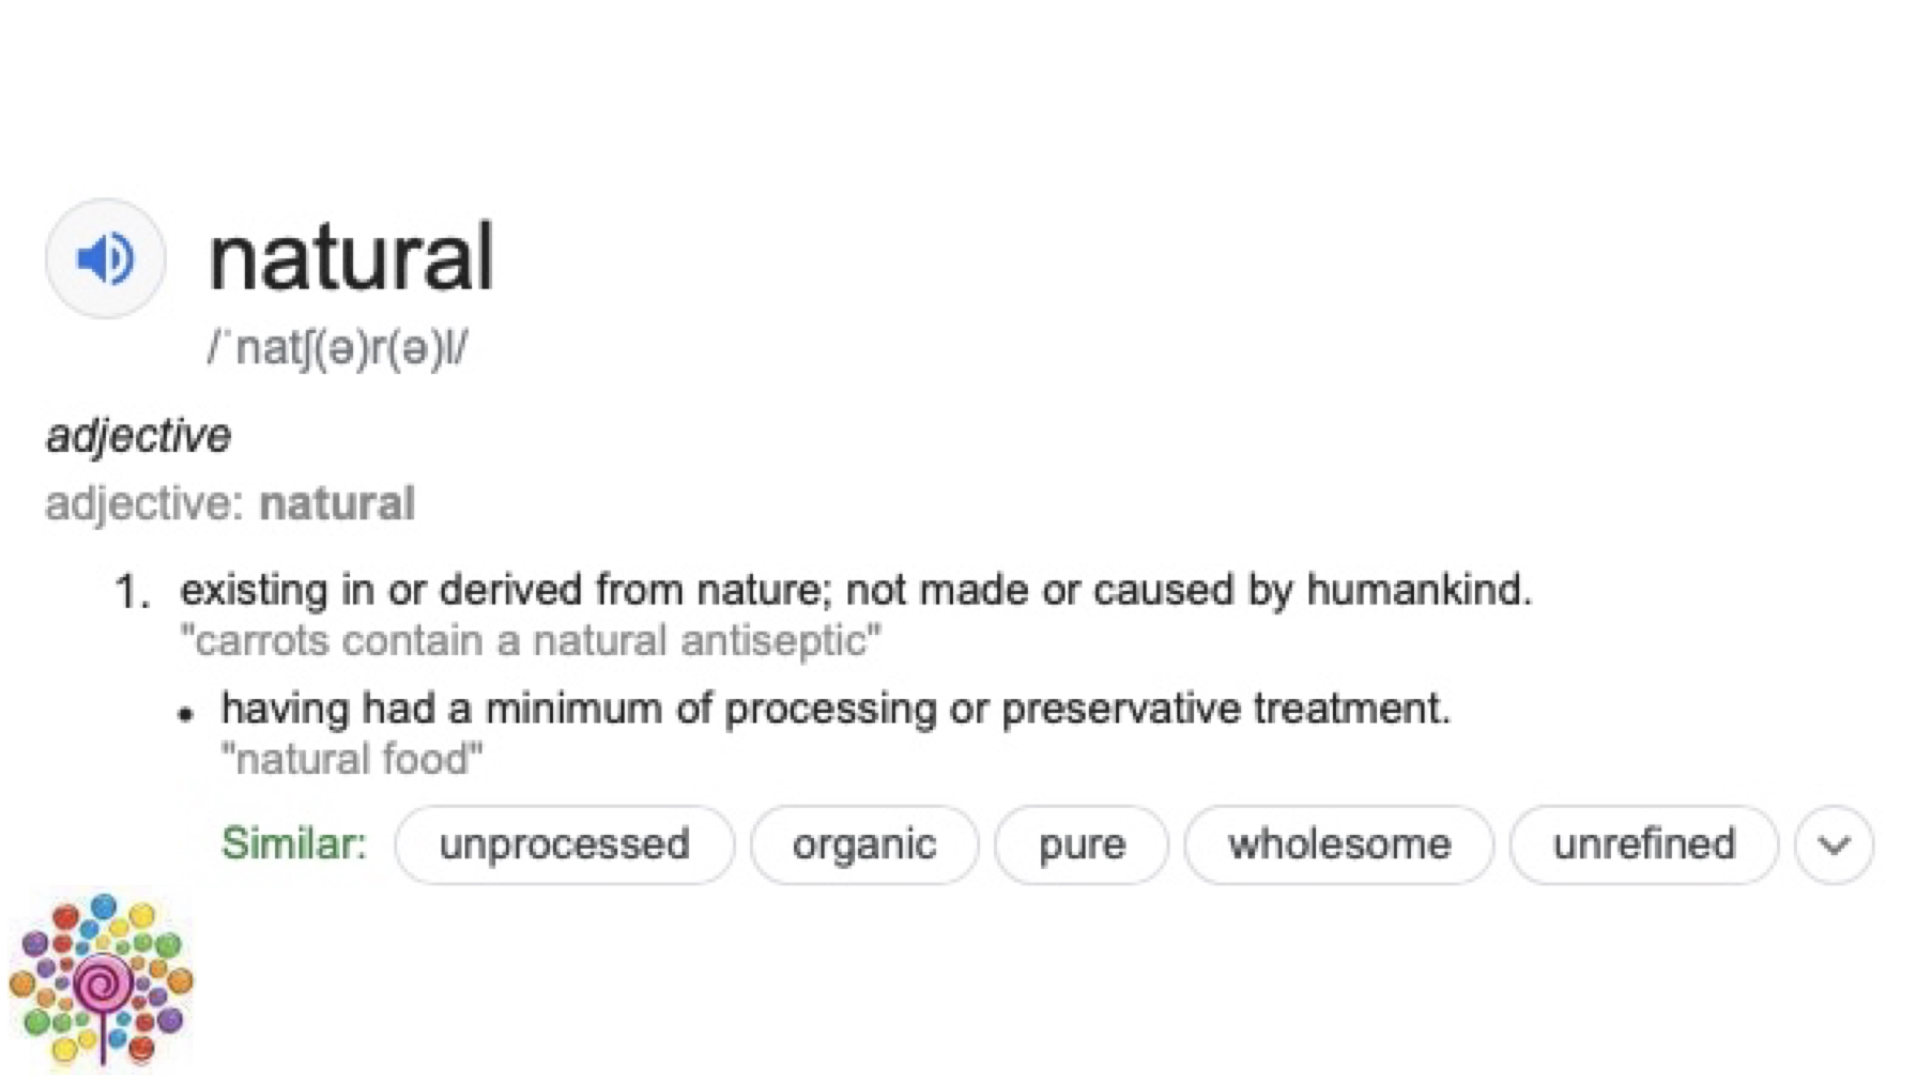 Definition of natural, in the context of food.